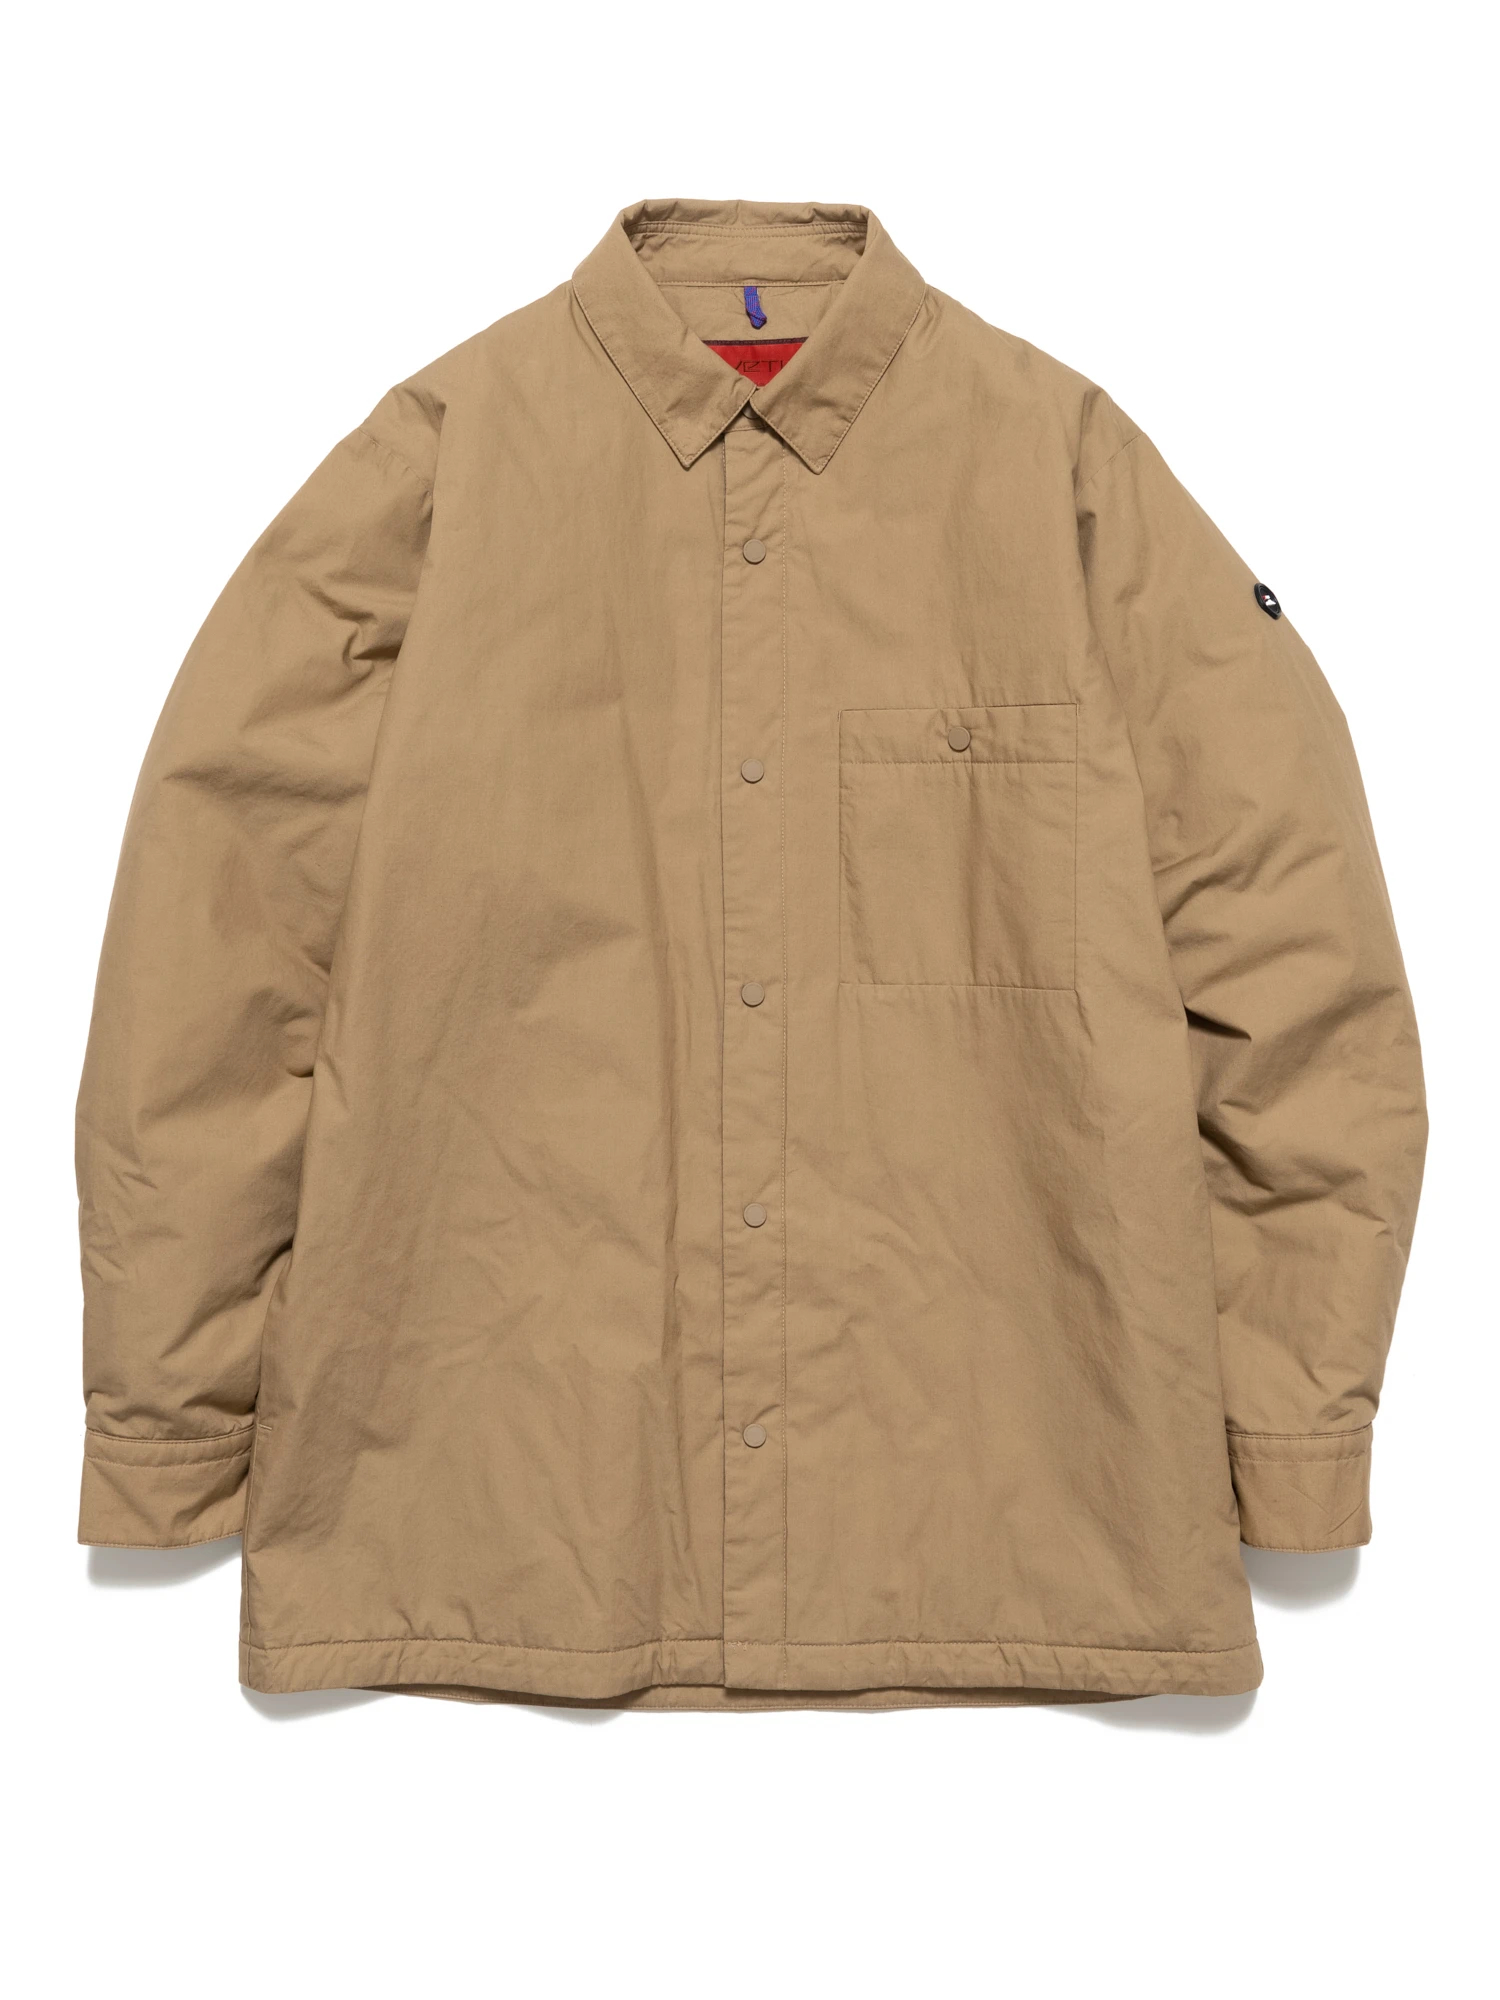 Yeti(イエティ) |THINDOWN SHIRTS JACKET